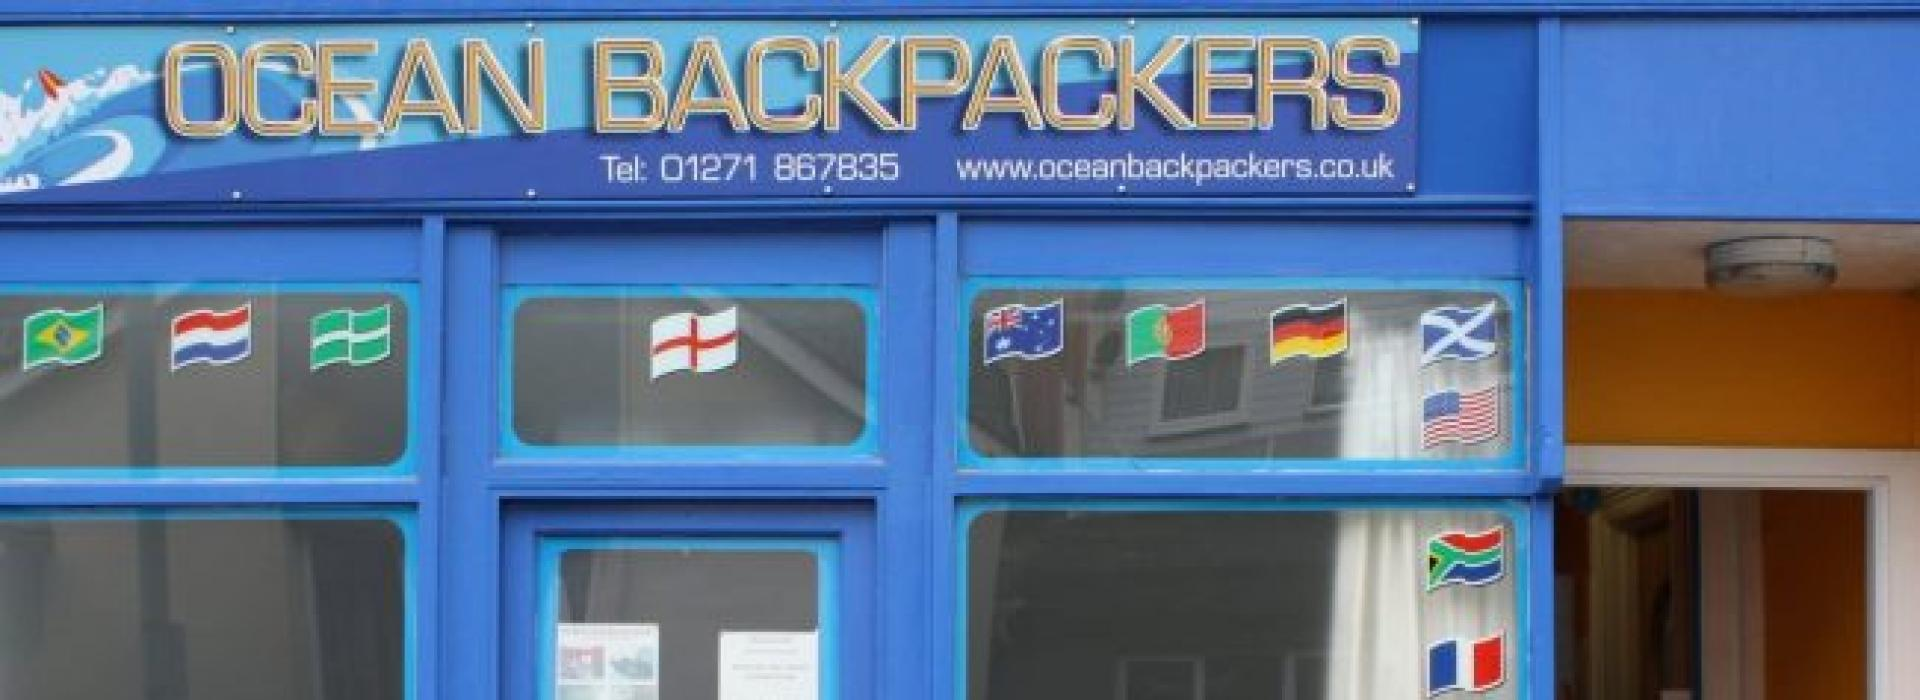 Ovean Backpackers Ilfracombe, places to stay in ilfracombe, things to do near me, things to do in devon